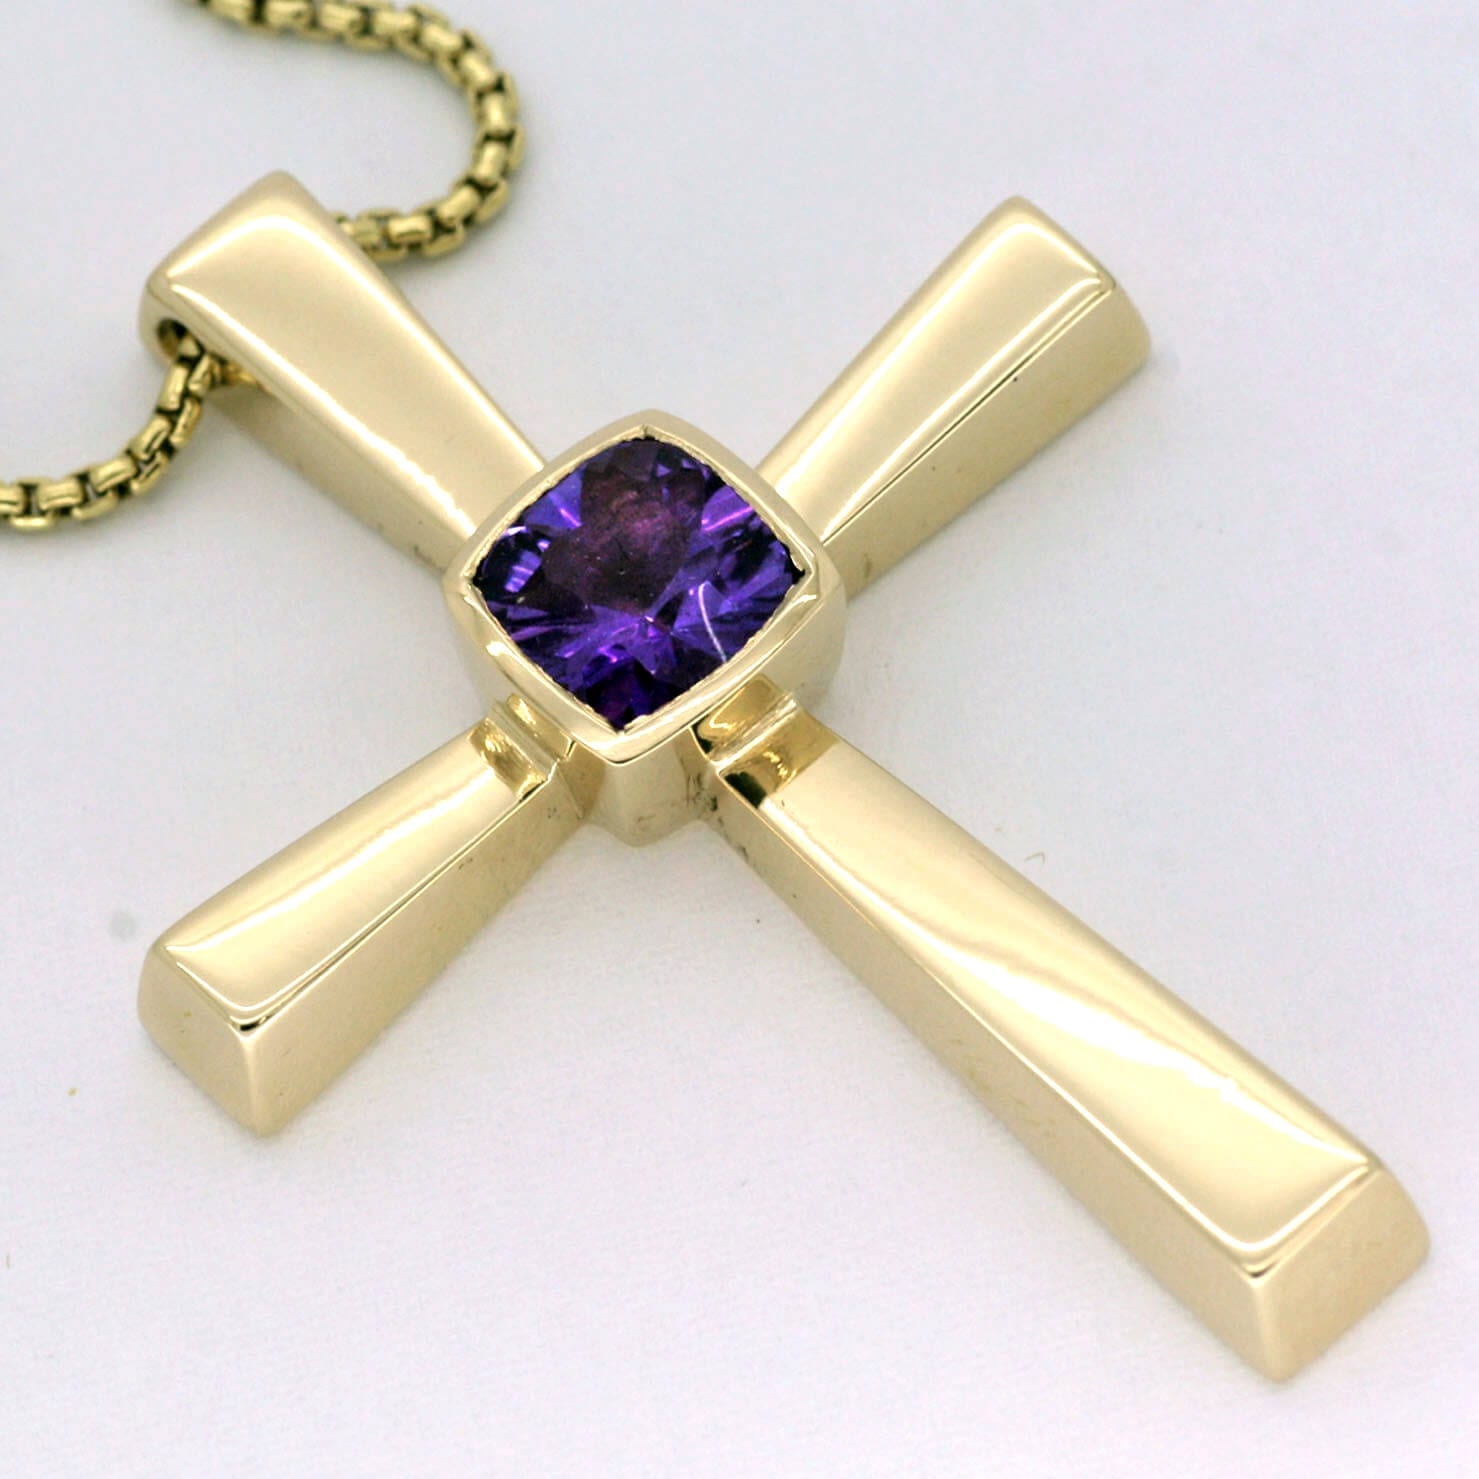 Handmade solid Gold cross set with Optix cut Amethyst